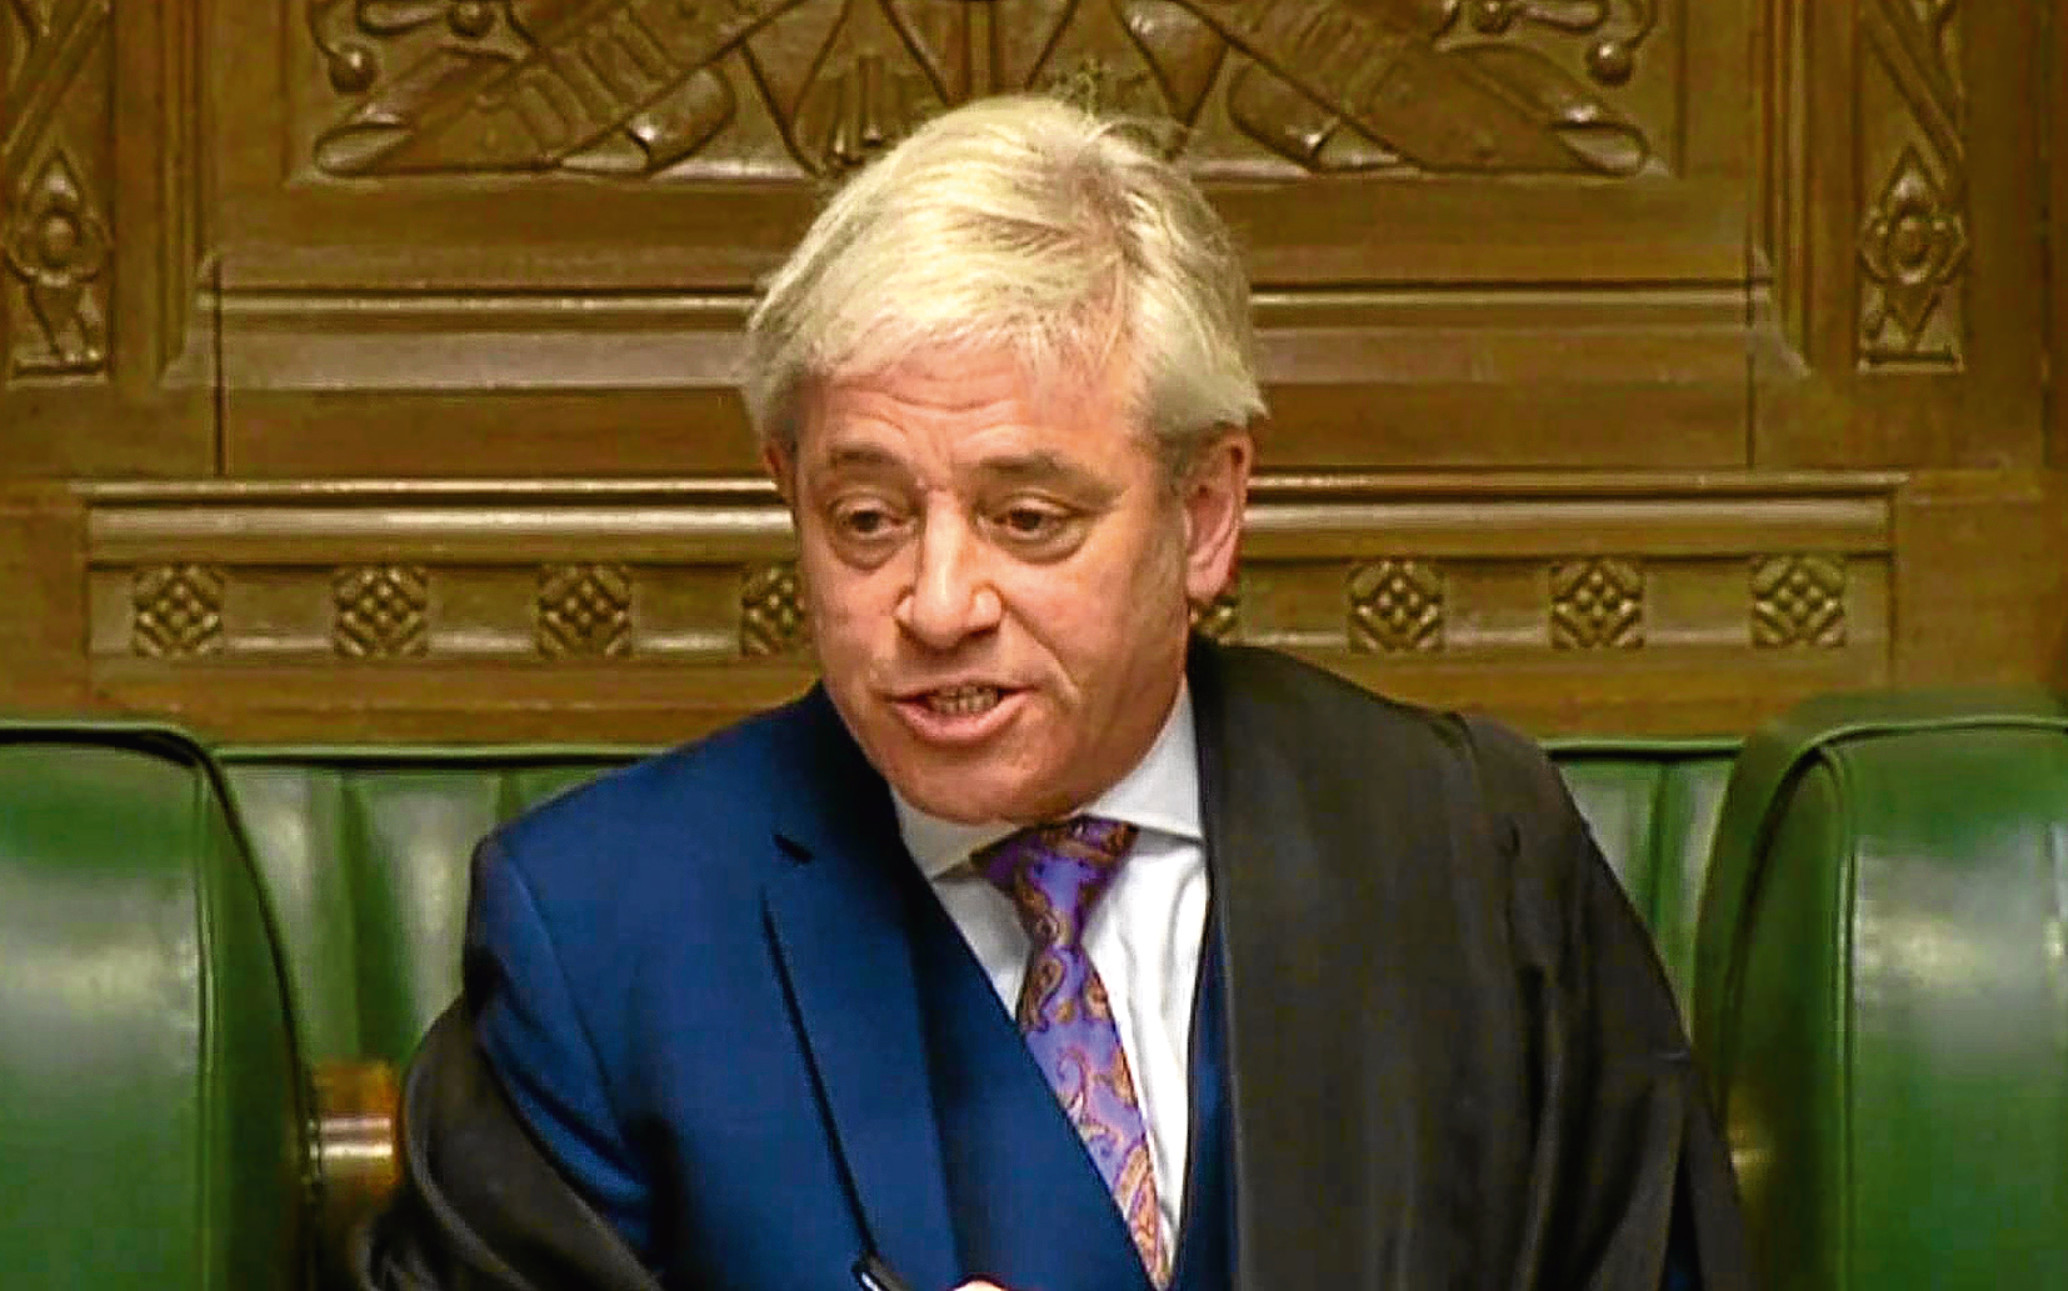 Commons Speaker John Bercow speaks during Prime Minister's Questions in the House of Commons (PA Wire)